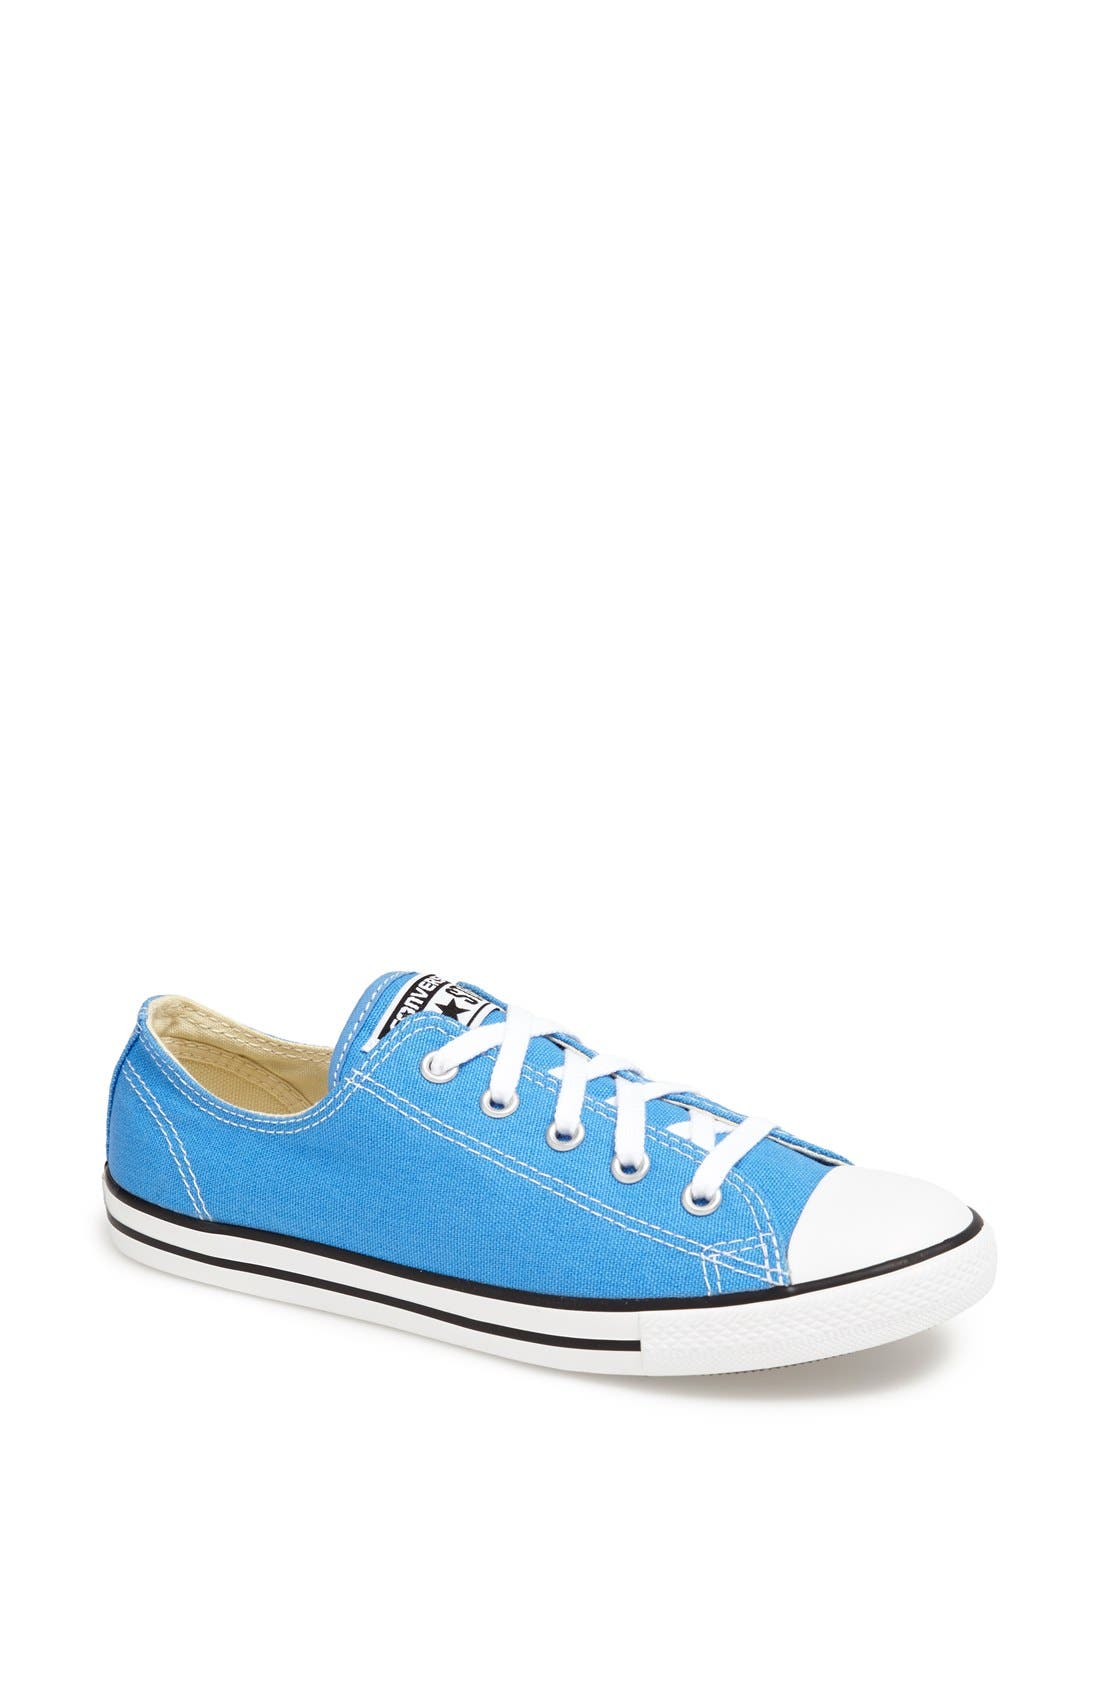 Alternate Image 1 Selected - Converse Chuck Taylor® All Star® 'Dainty' Sneaker (Women)